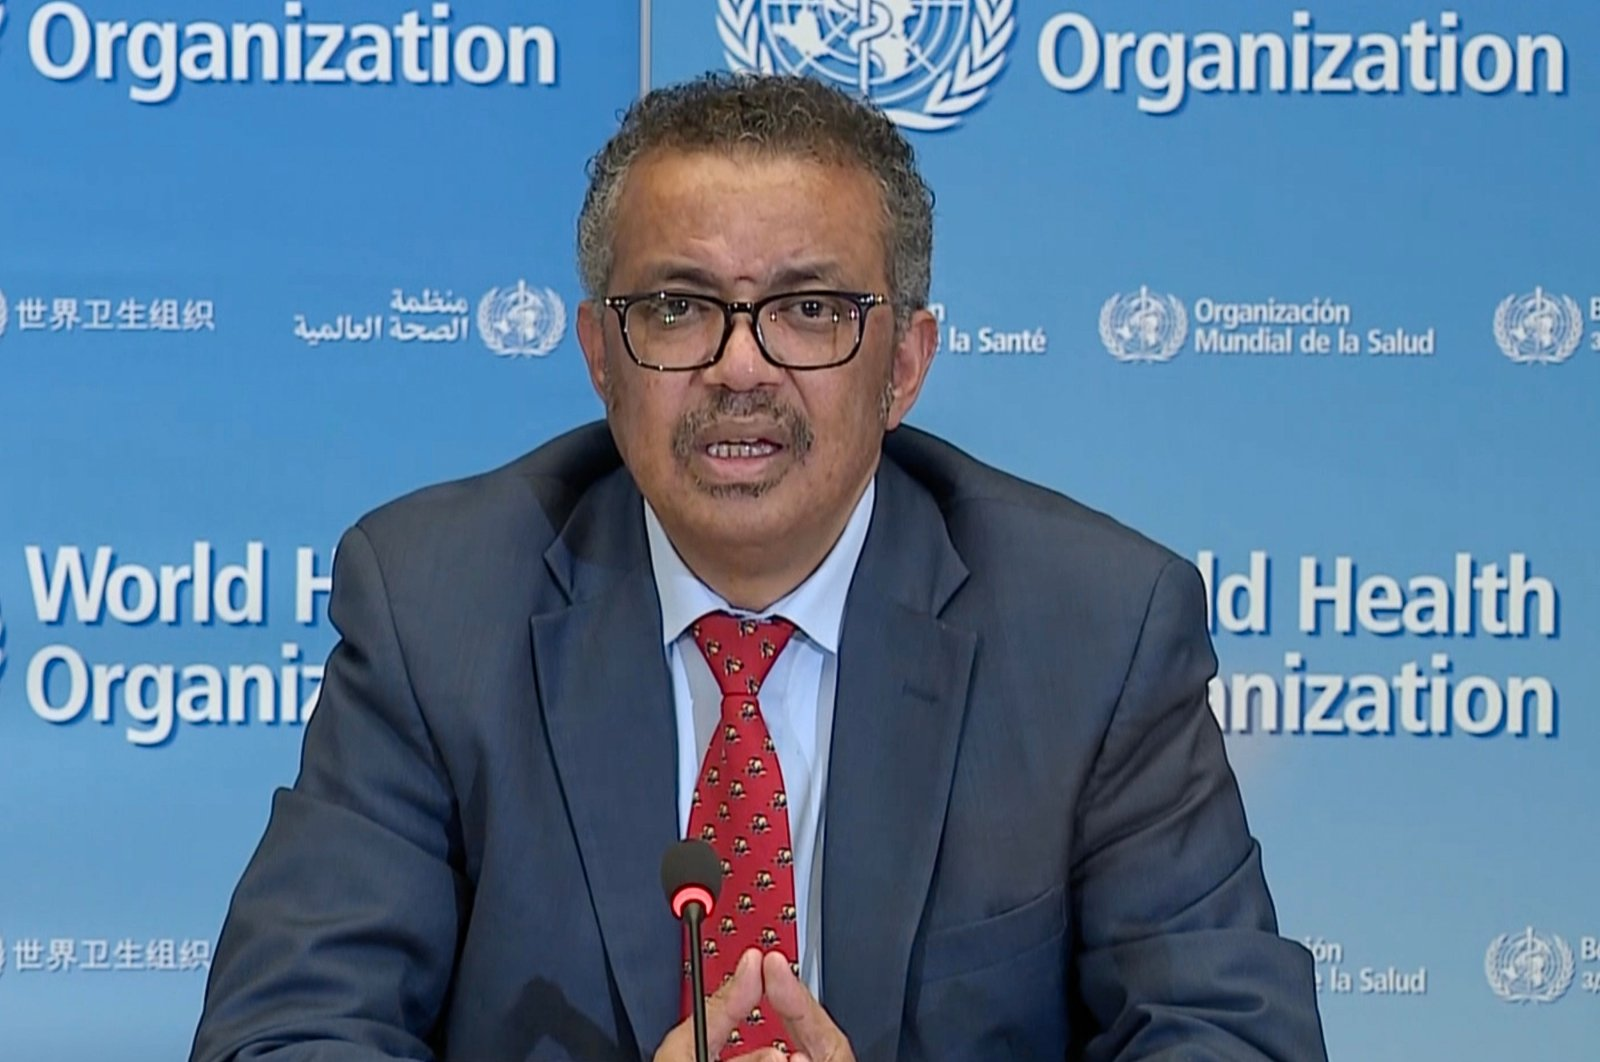 WHO Director-General Tedros Adhanom Ghebreyesus attends a virtual news briefing on COVID-19 at the WHO headquarters, Geneva, Switzerland, Monday, April 6, 2020. (AFP Photo)